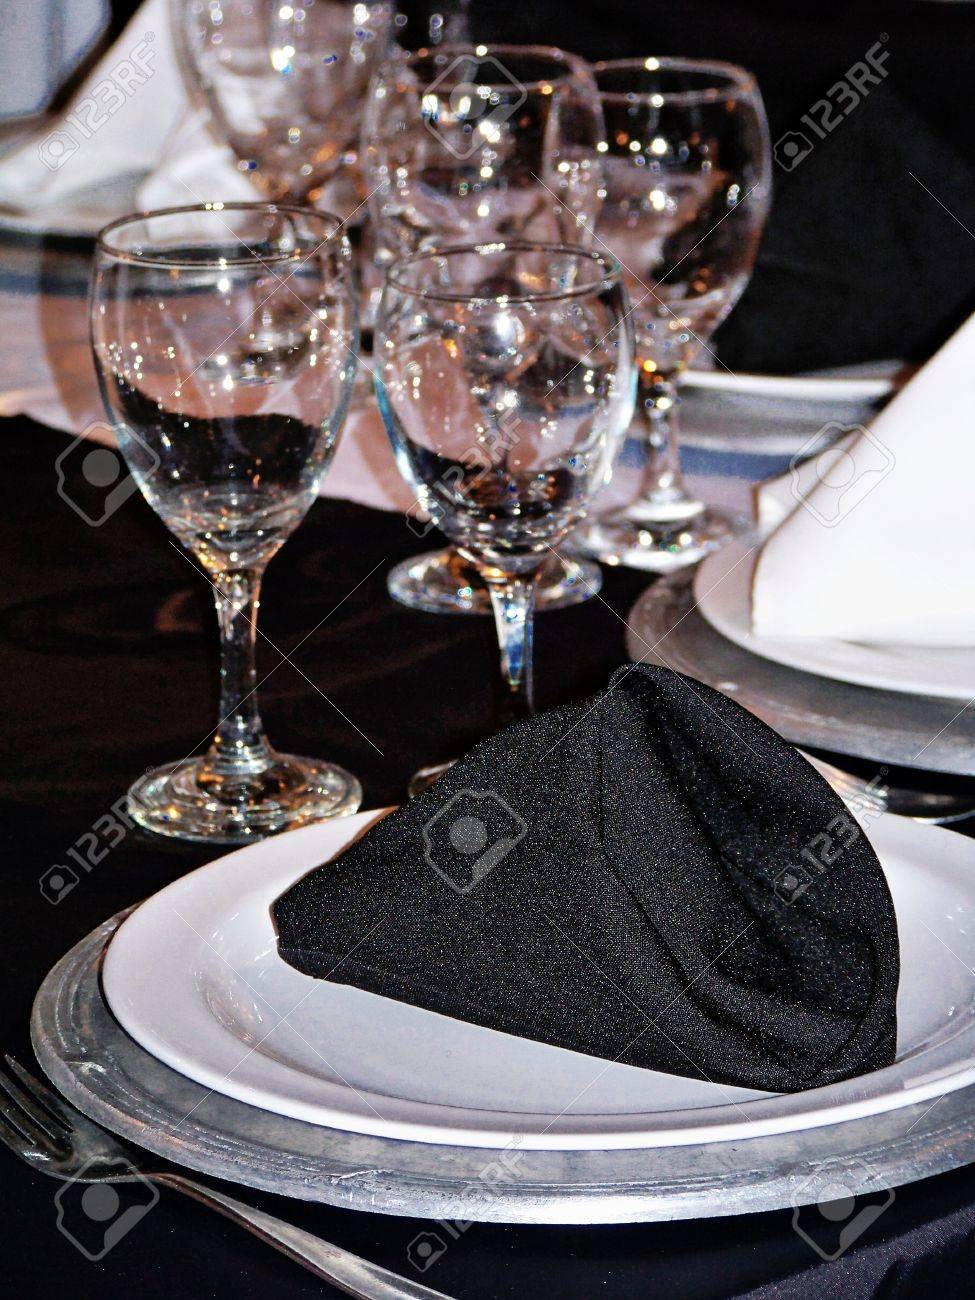 Elegance for party celebration dinner in silver, black and white Stock Photo - 12622520